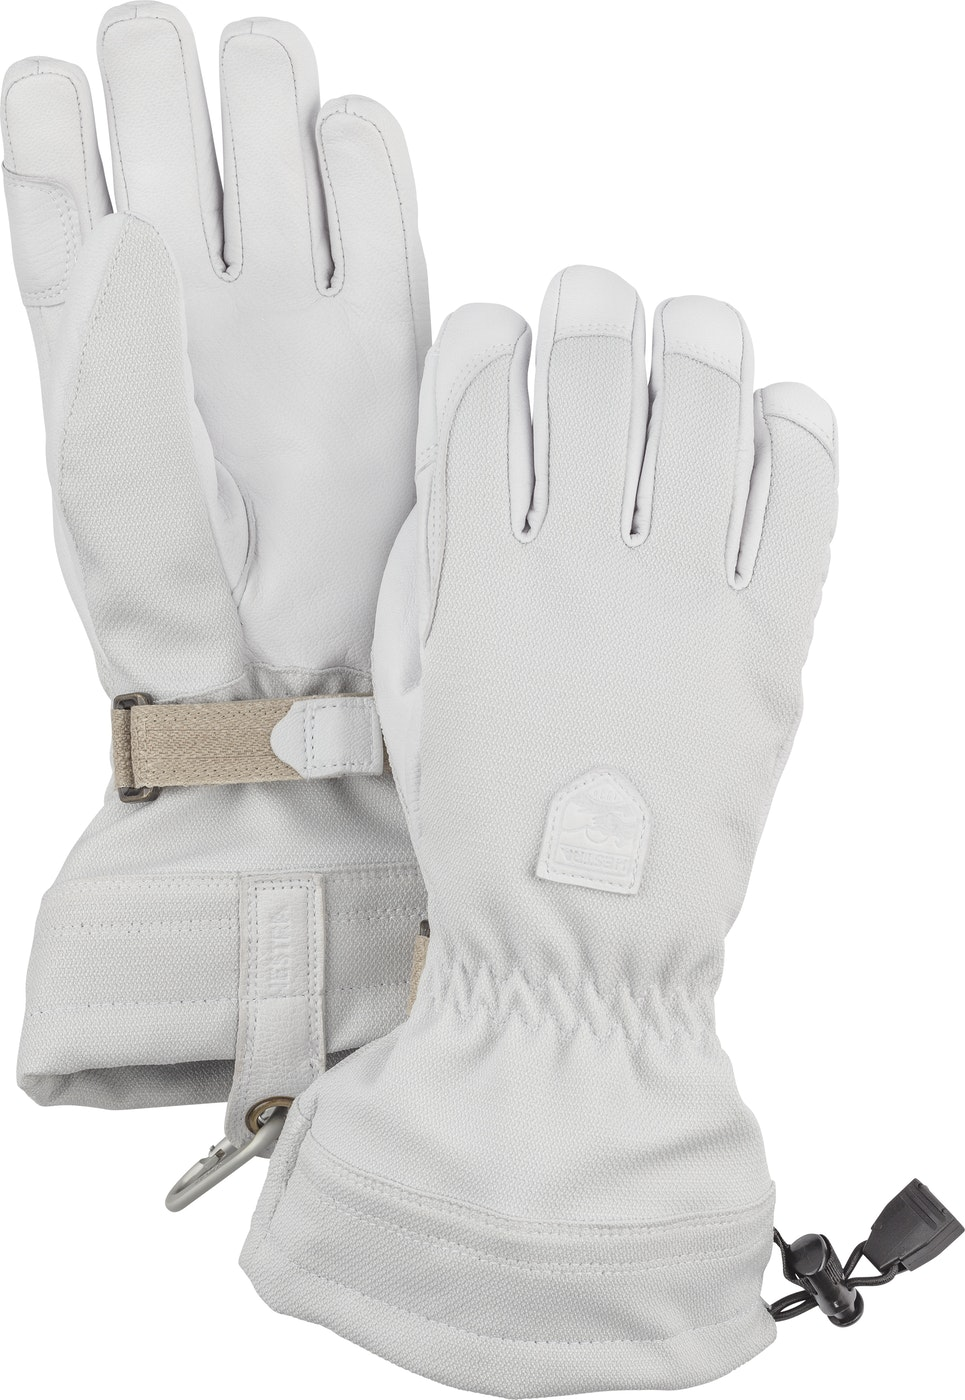 Product image for 30600 Women´s Patrol Gauntlet